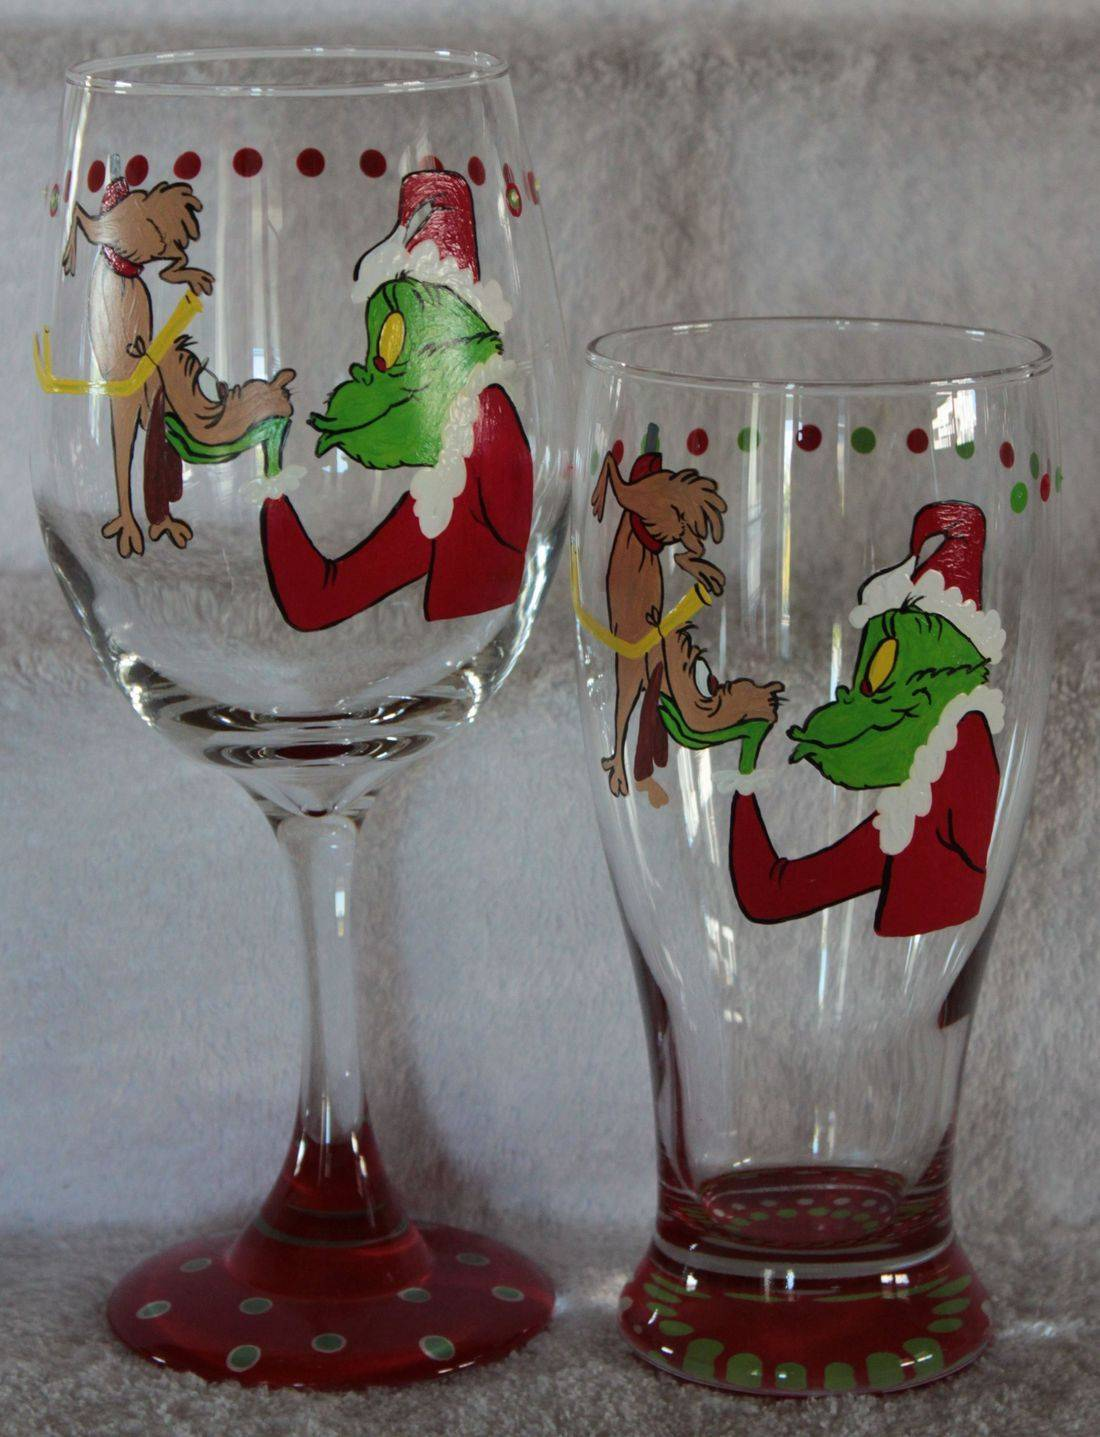 Grinch Wine Glass, Max and Grinch wine glass, christmas wine glass